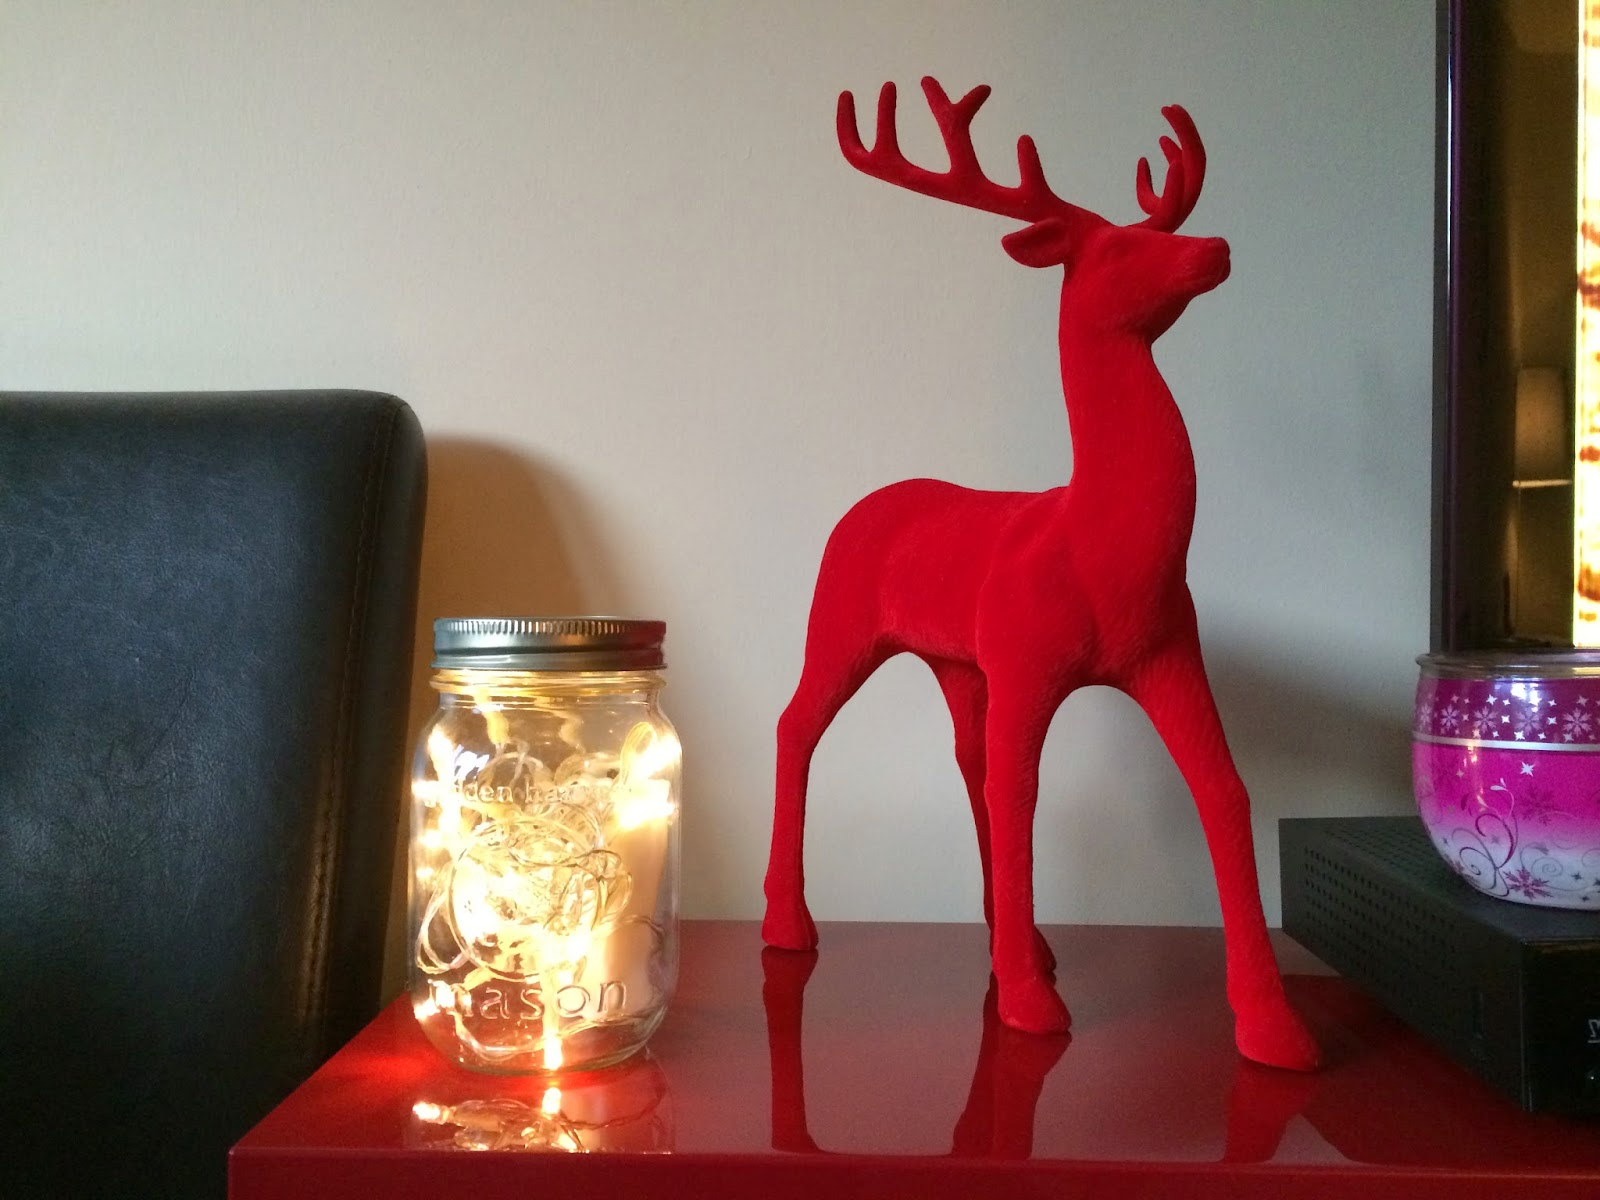 wilko-reindeer-decoration